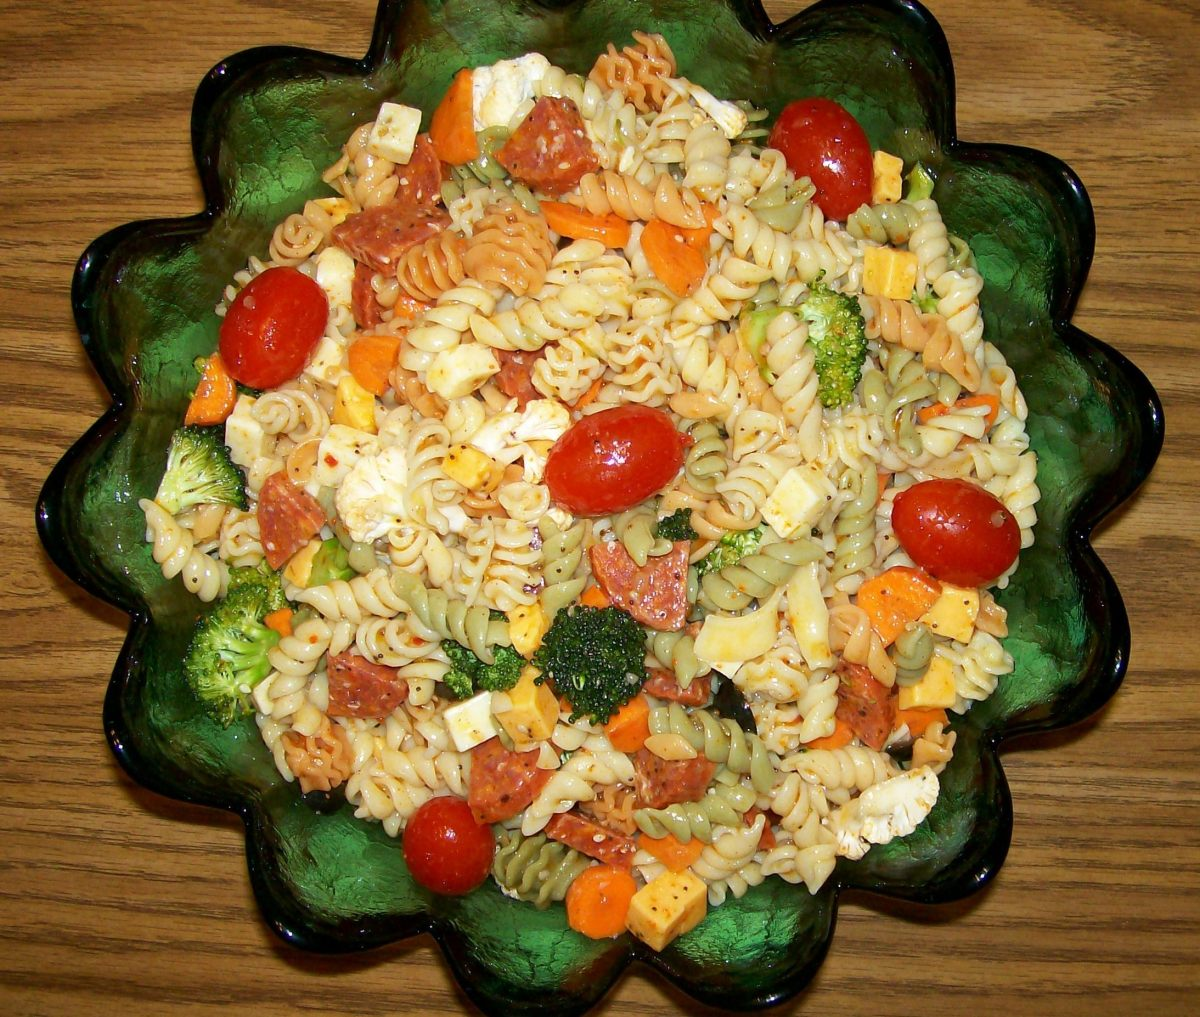 Supreme Pasta Salad has been chilled and ready to serve!